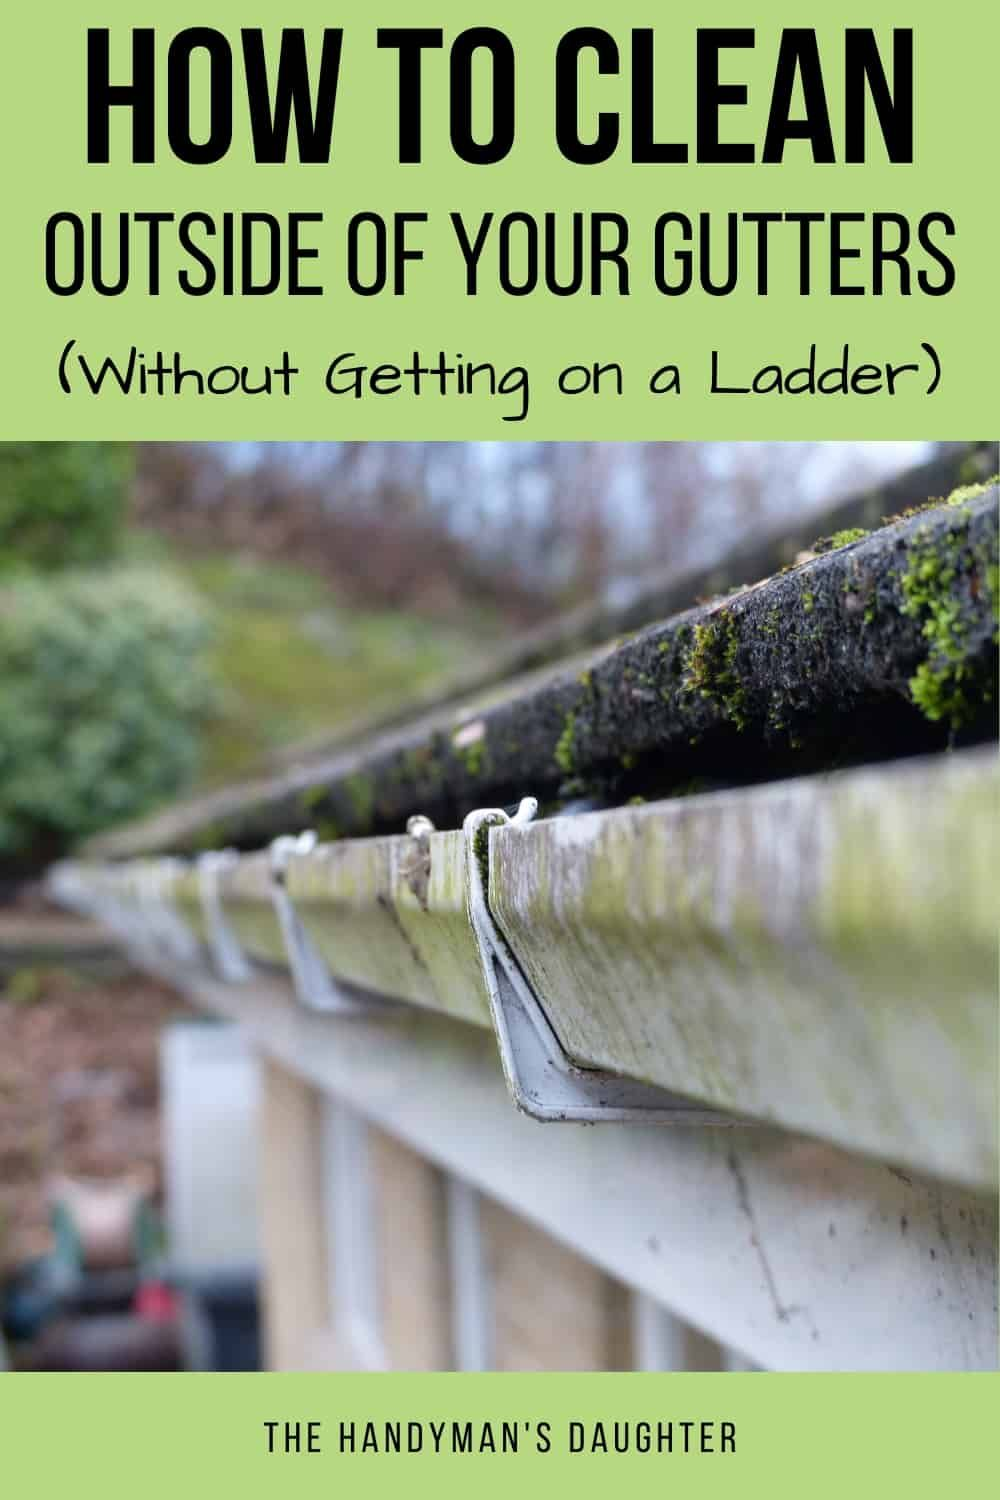 How To Clean The Outside Of Gutters Without A Ladder In 2020 Gutters Cleaning Gutters How To Clean Aluminum